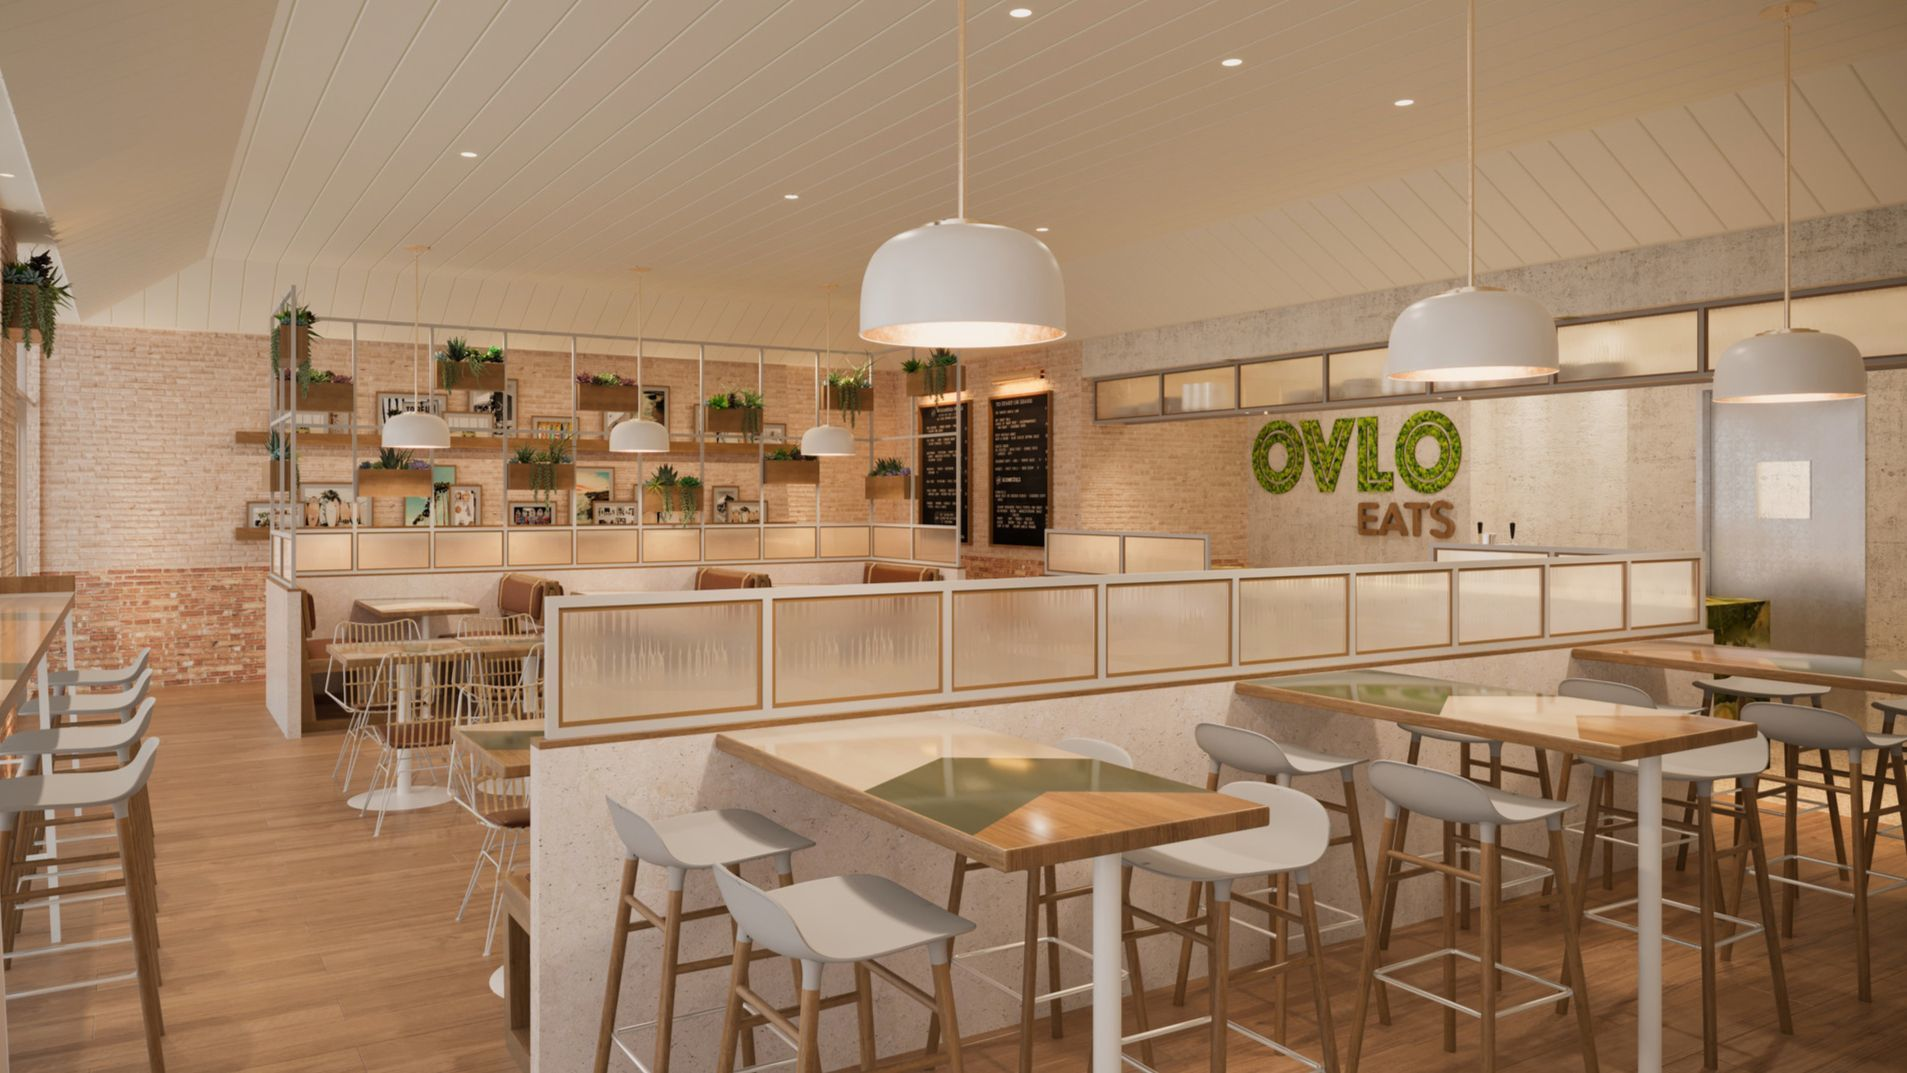 Ovlo Eats, a fast-casual fine-dining hybrid, opening in Plantation this April